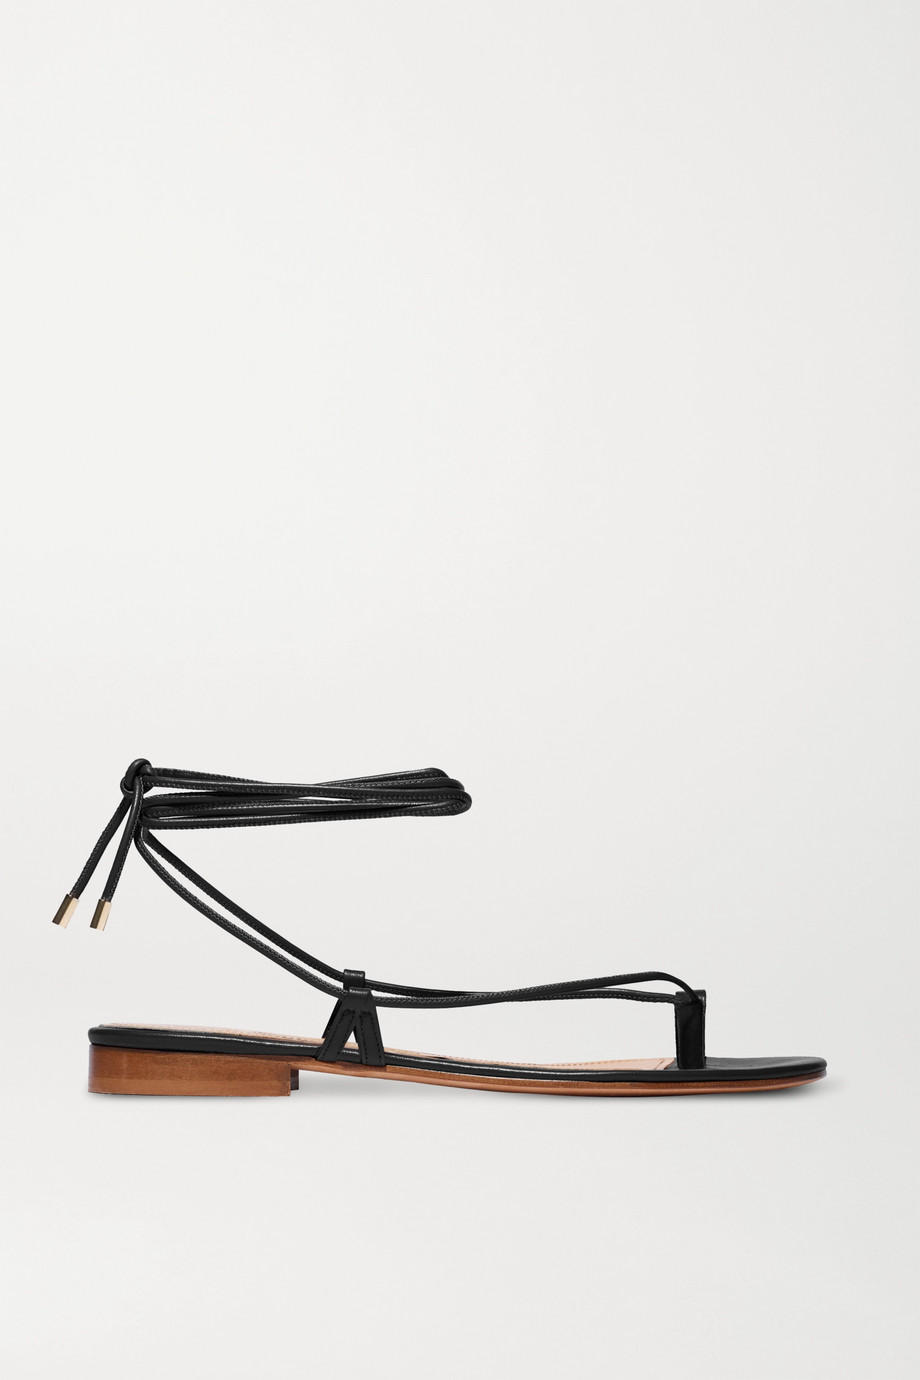 Emme Parsons Ava leather sandals